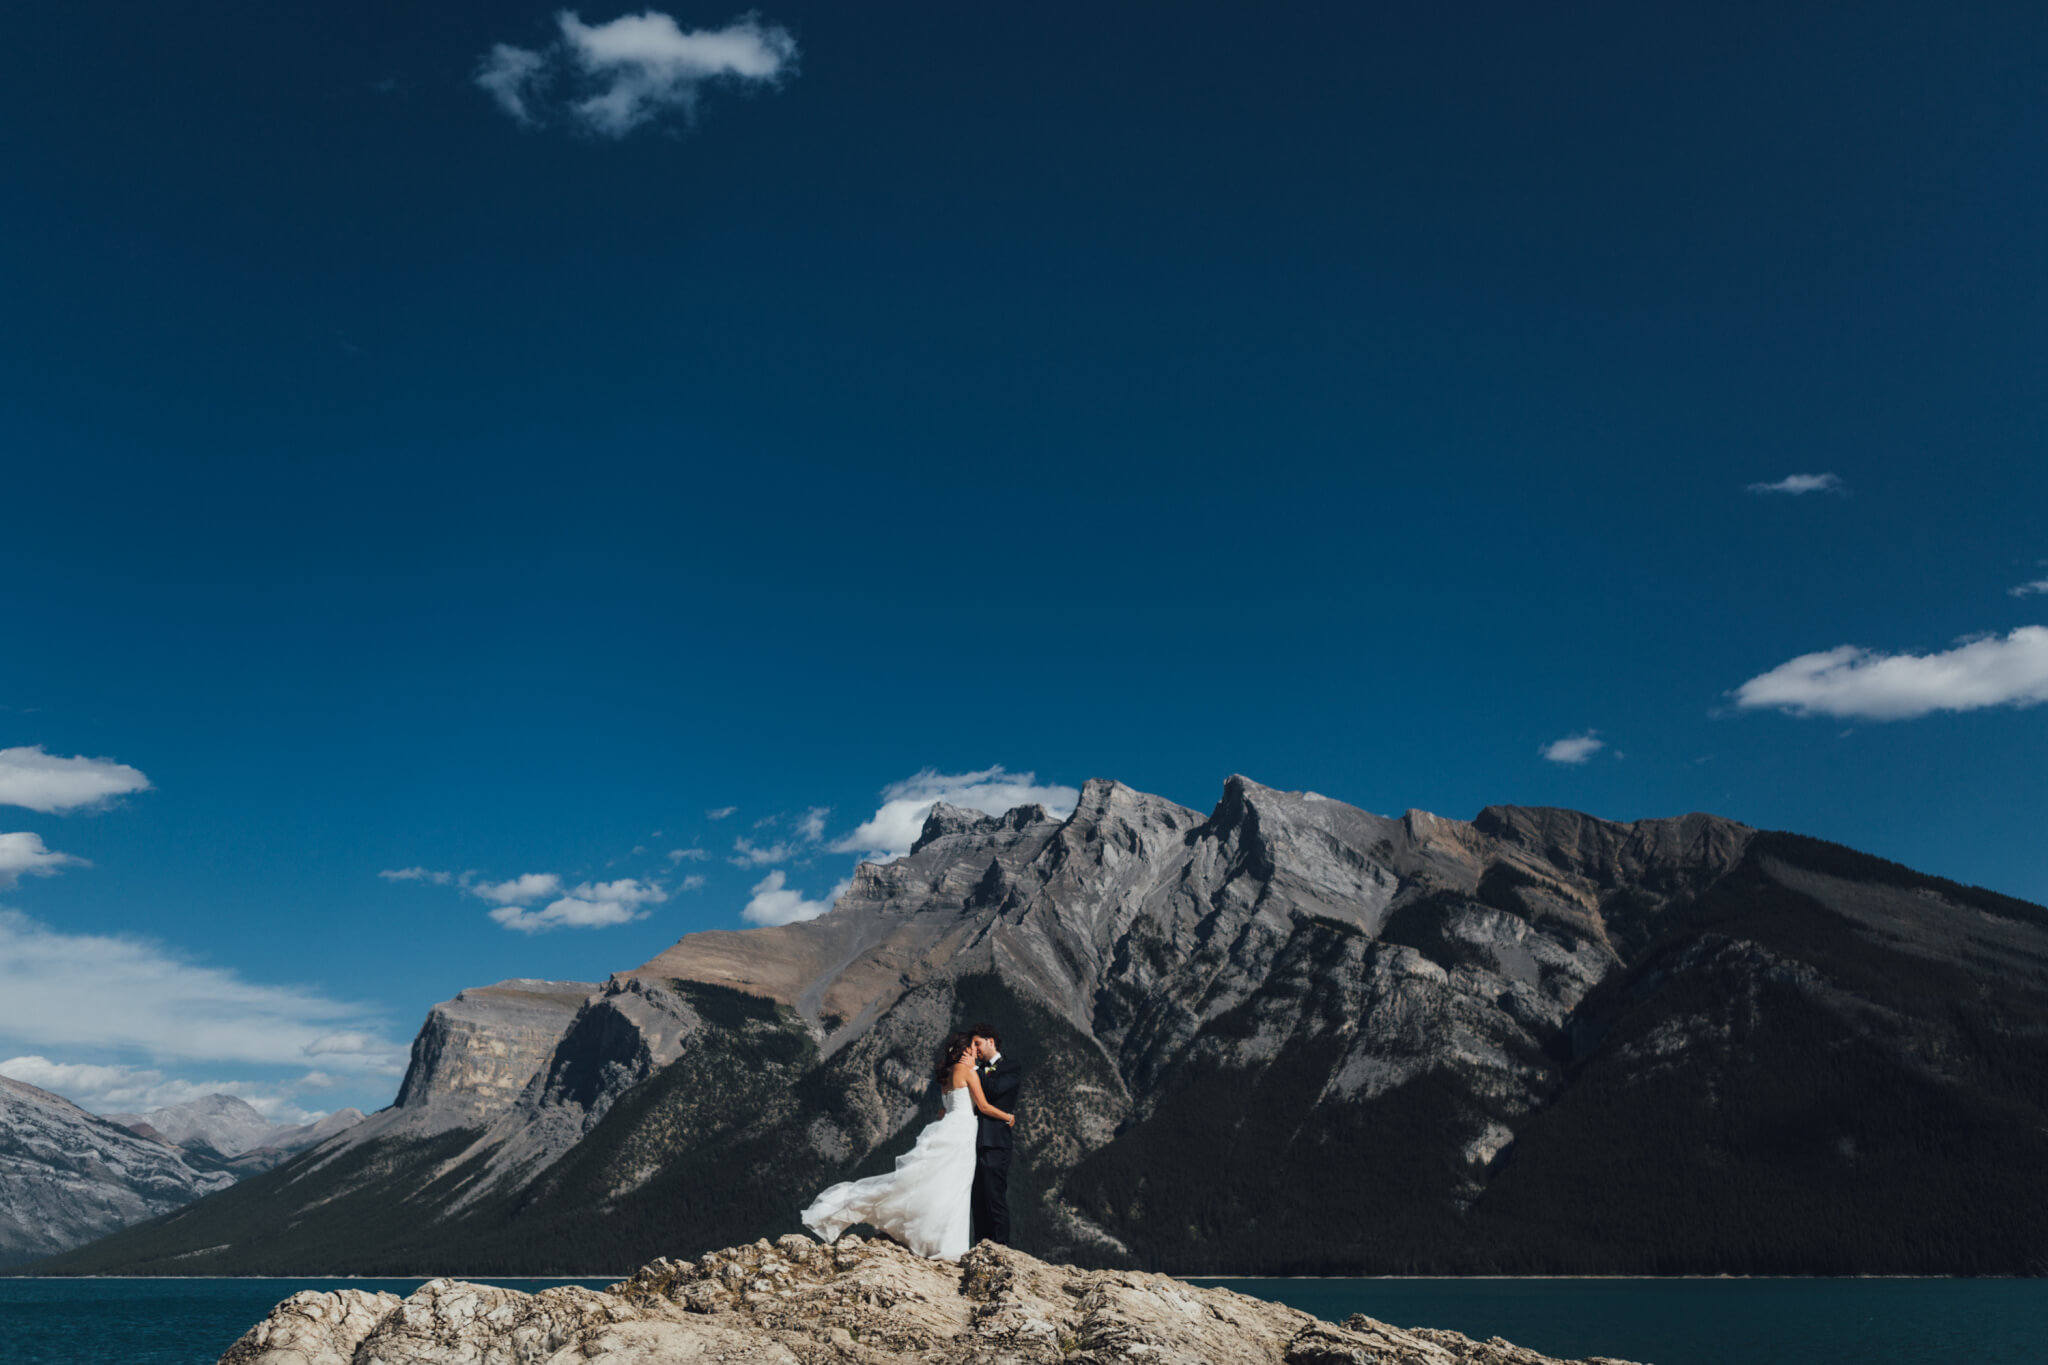 Calgary Banff Wedding Photography | Destination Wedding Photographer